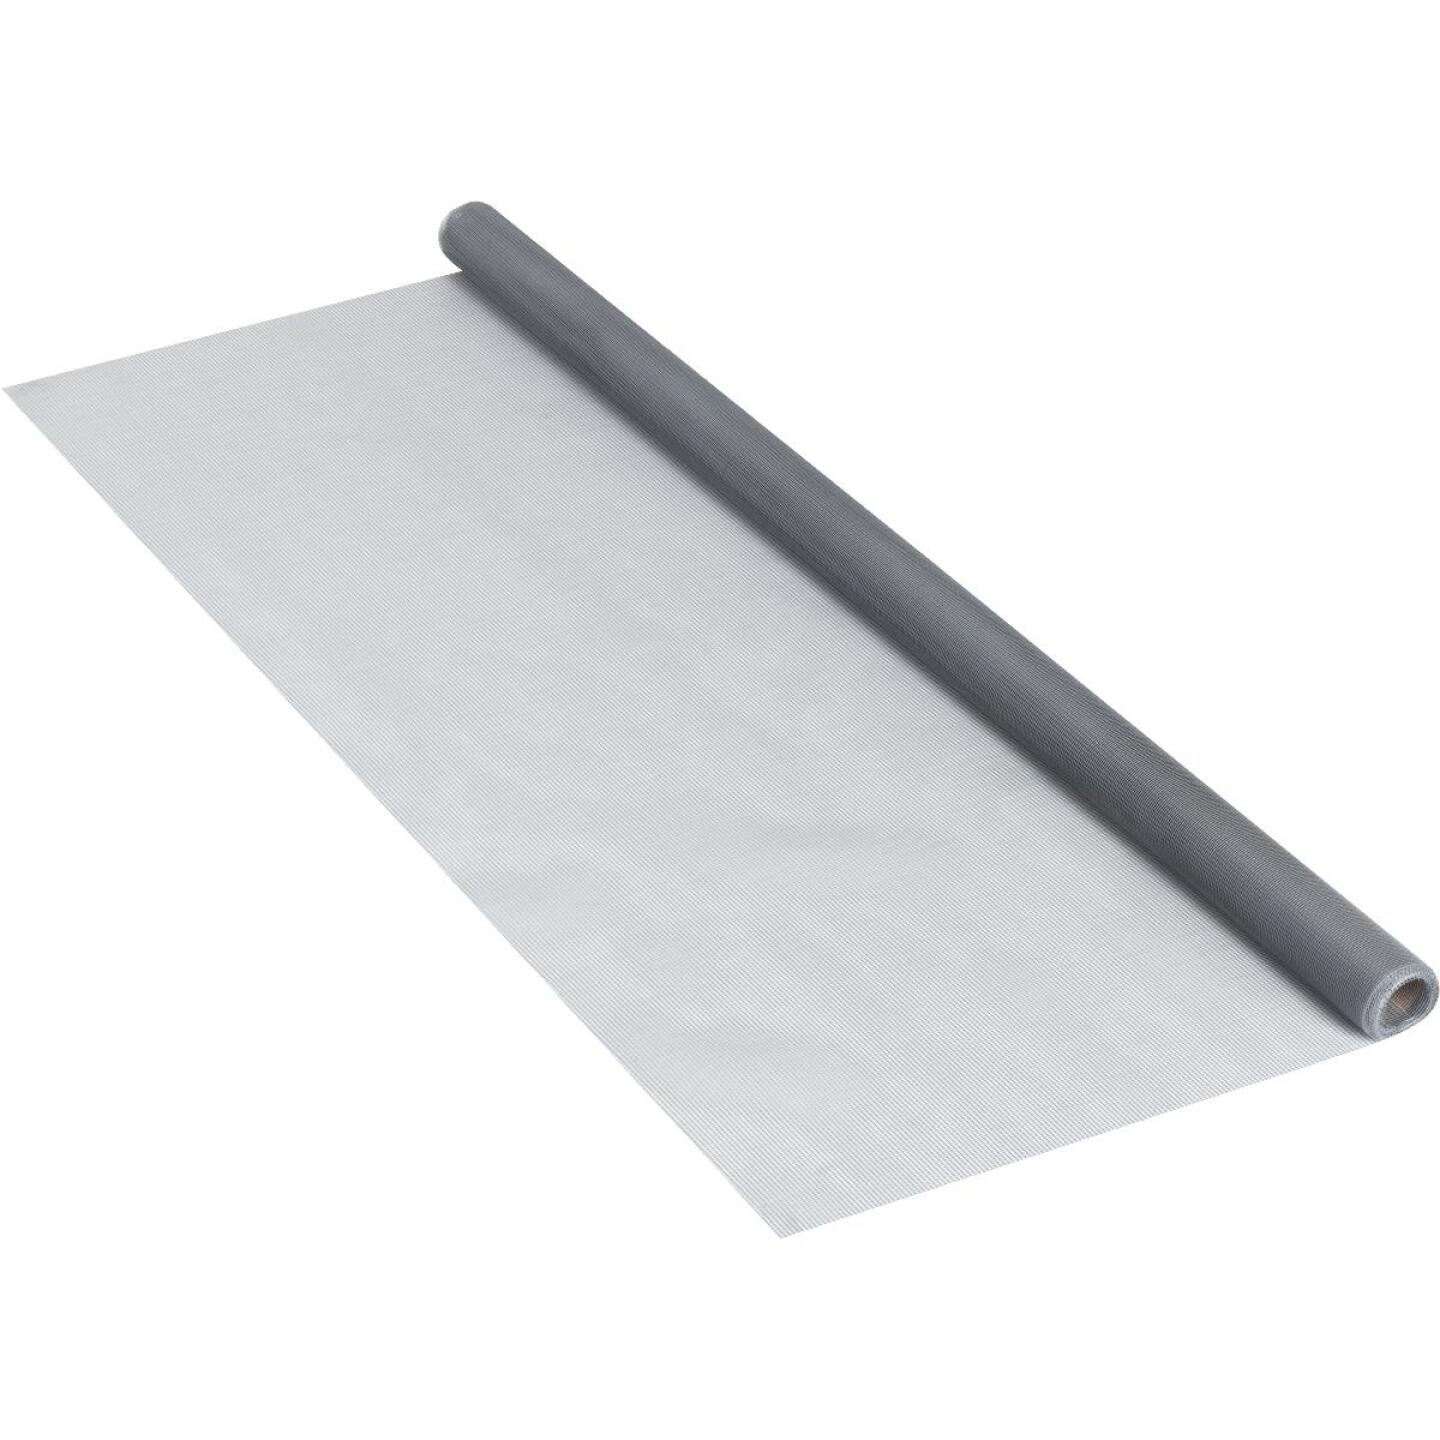 Phifer 30 In. x 84 In. Gray Fiberglass Screen Cloth Ready Rolls Image 2